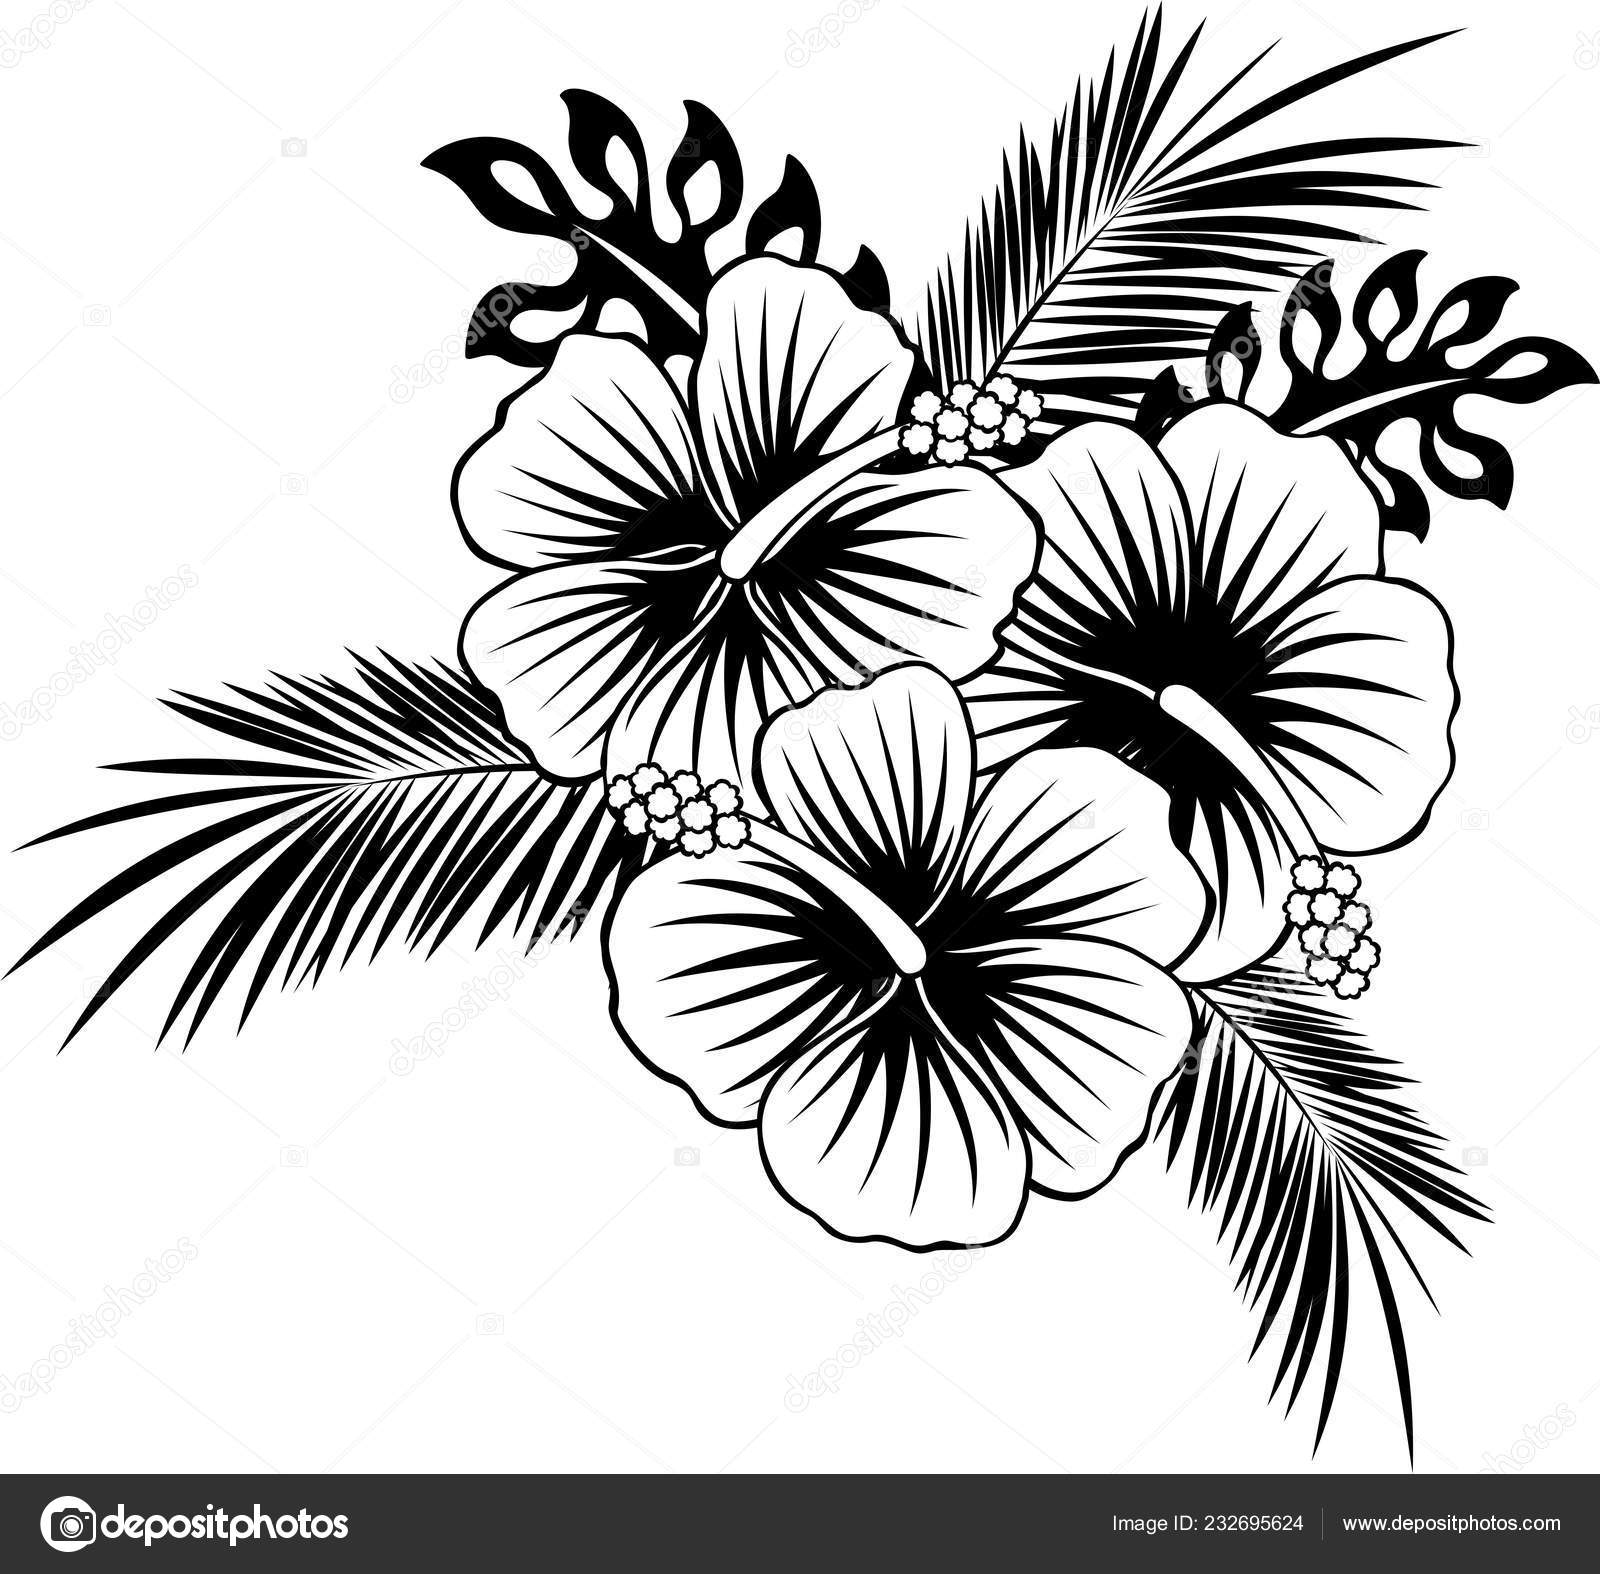 Hibiscus Flower Black And White Hibiscus Flowers Tropical Leaves Black White Stock Vector C Hayaship 232695624 8x12 this photo is printed on kodak endura professional paper. depositphotos